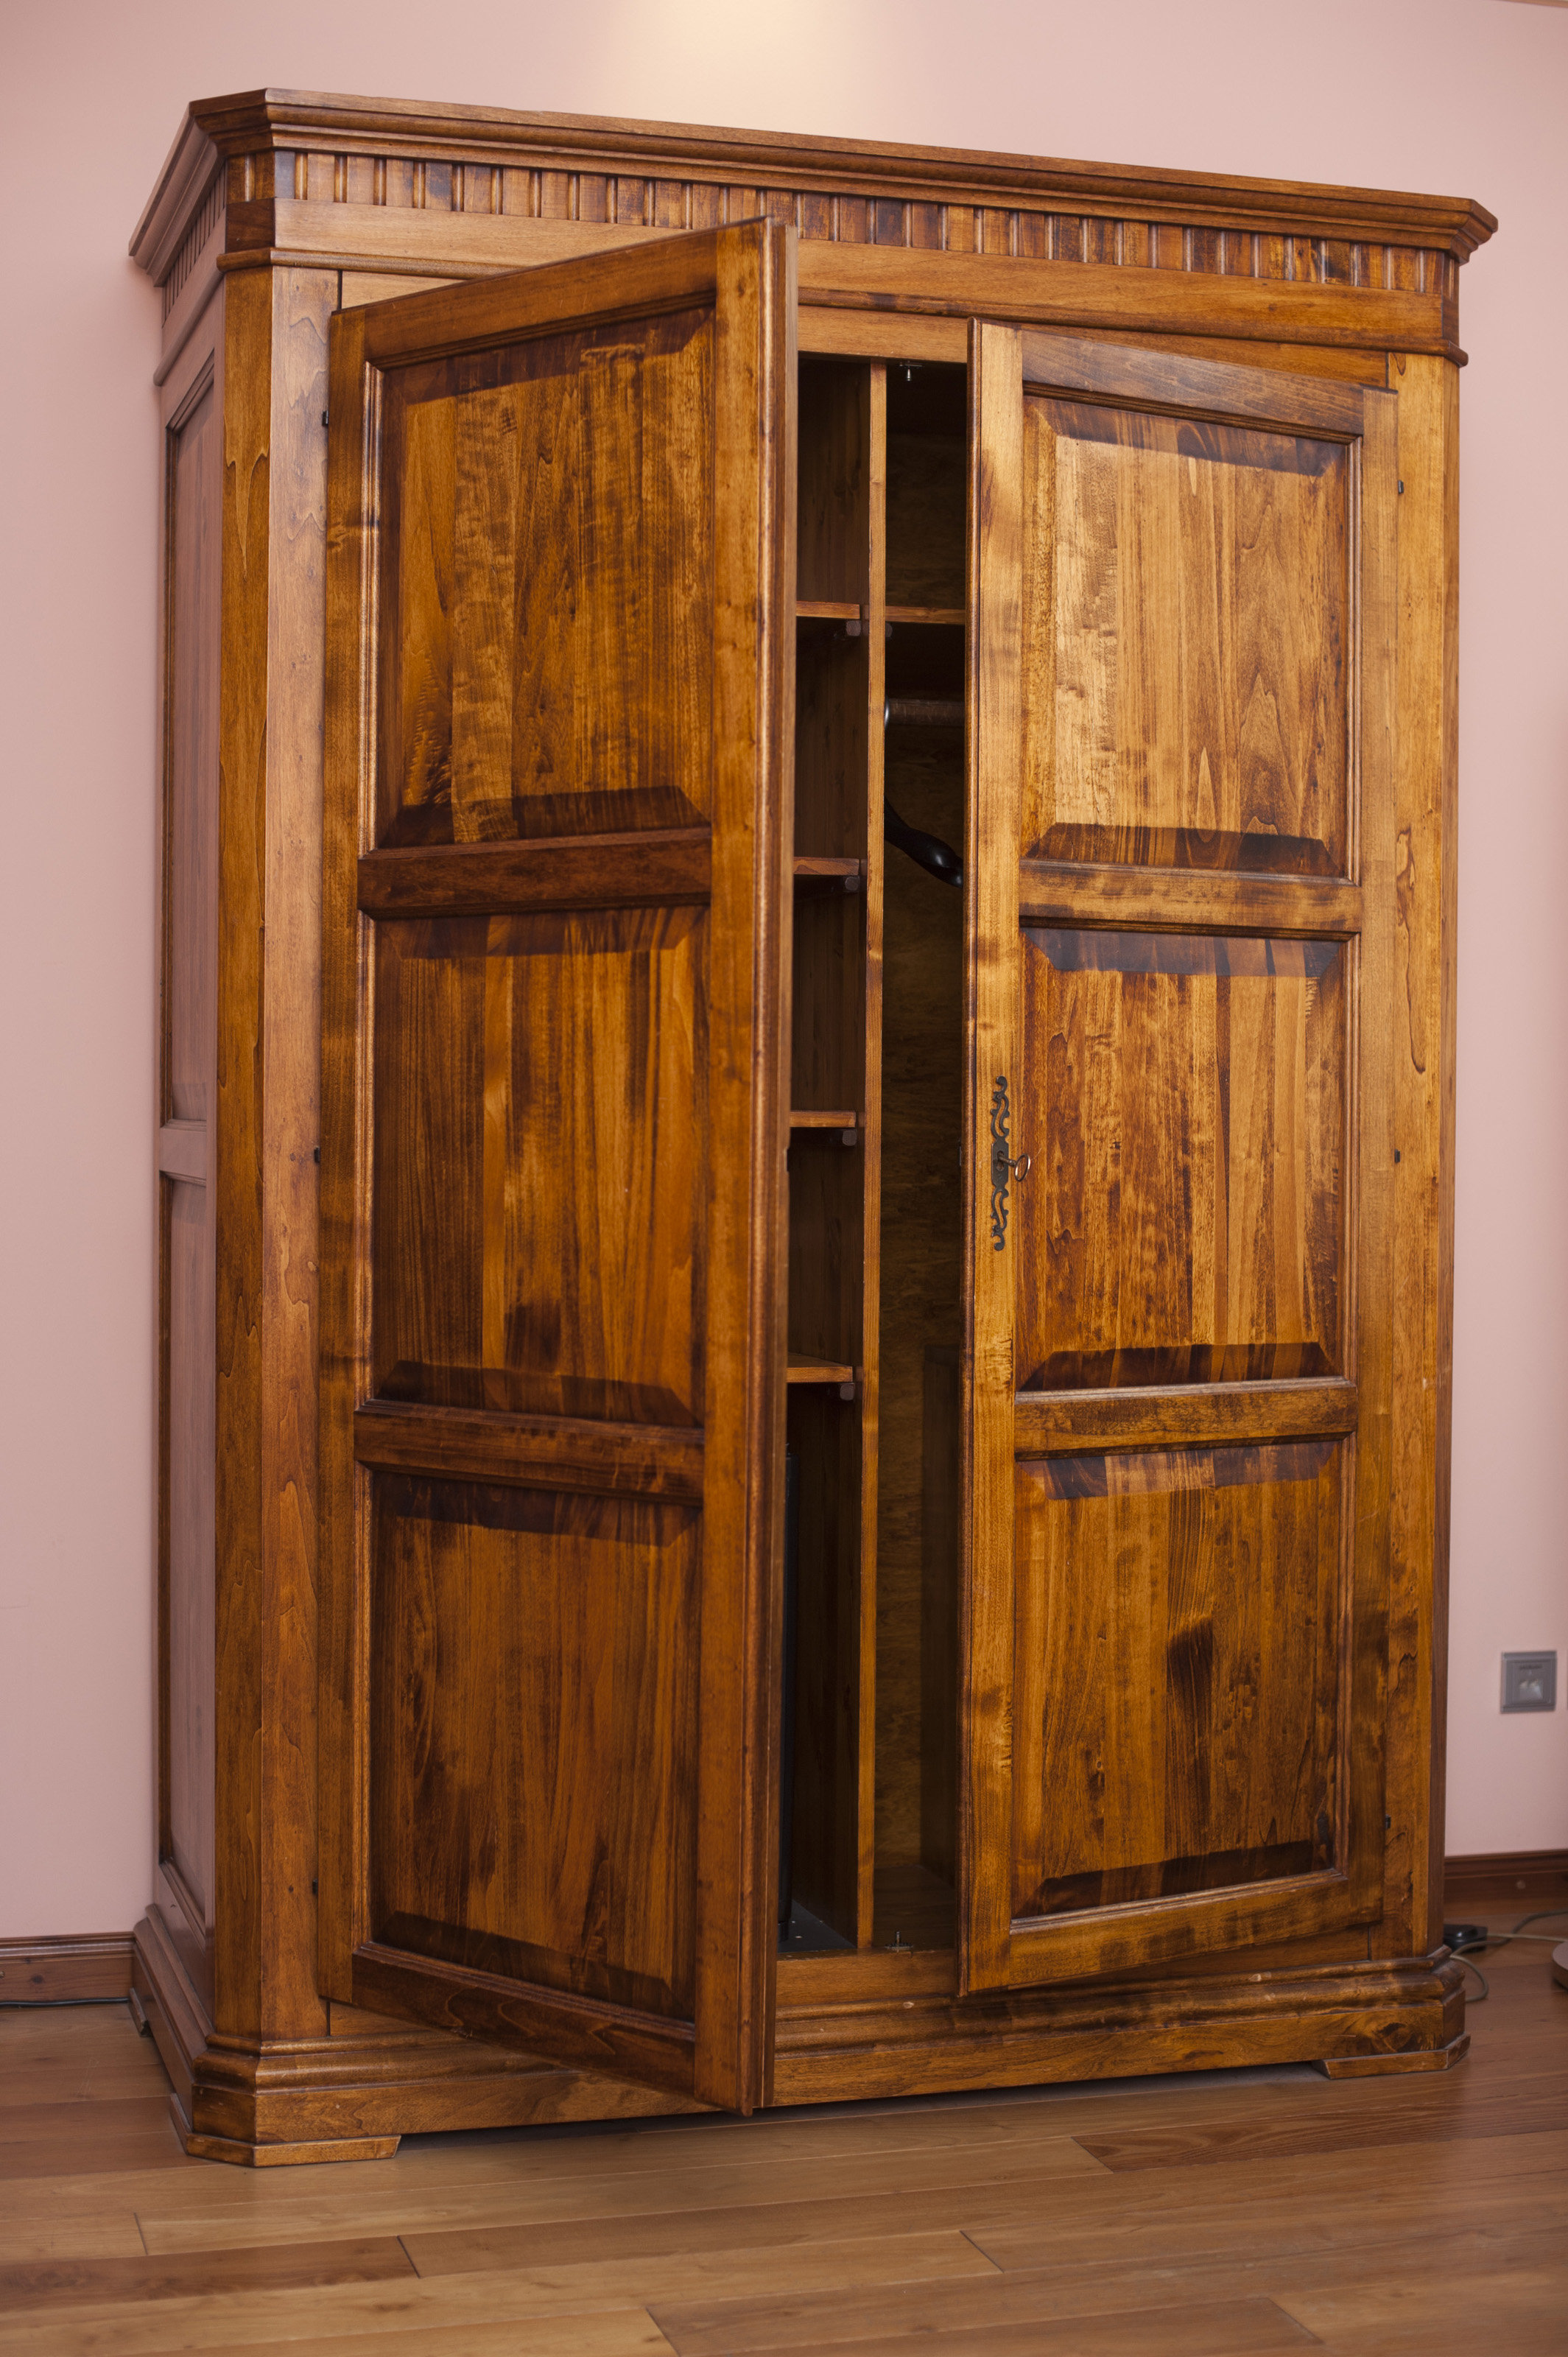 Large Old Rustic Wooden Wardrobe Or Cabinet Used To Store Clothing Standing In A Bedroom With